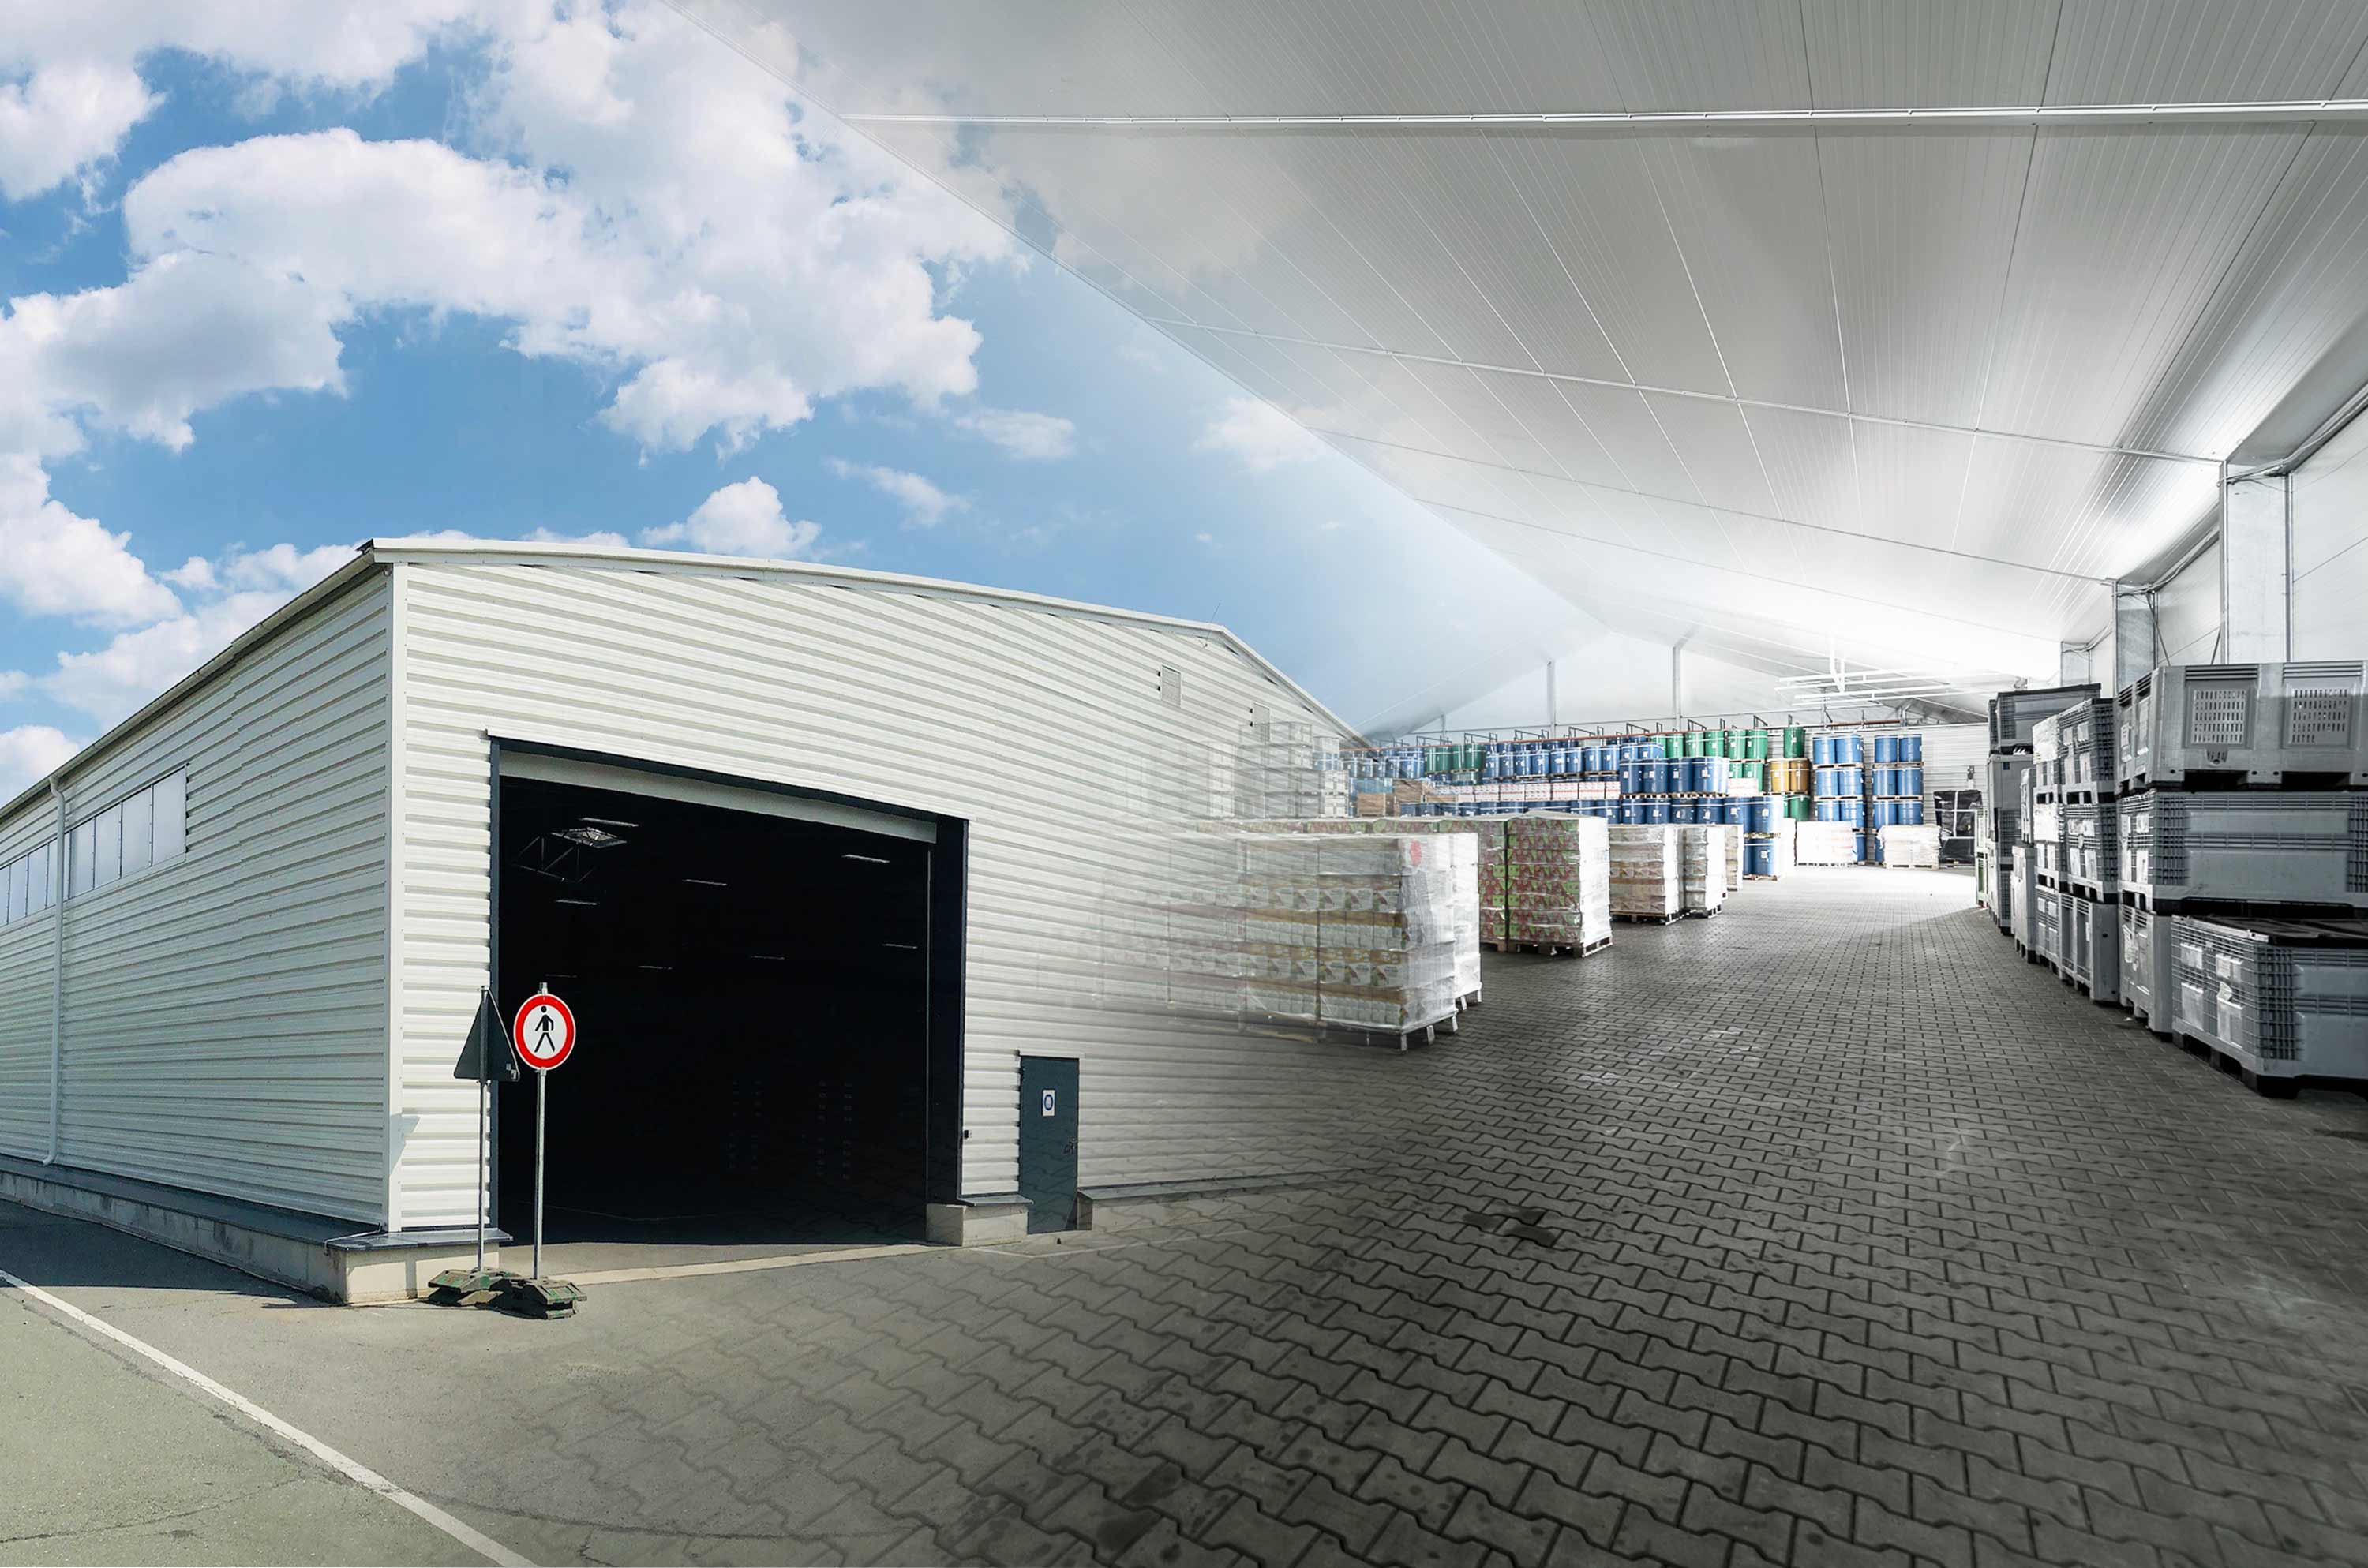 Photograph of a Completed Internal andWarehouse External blended together